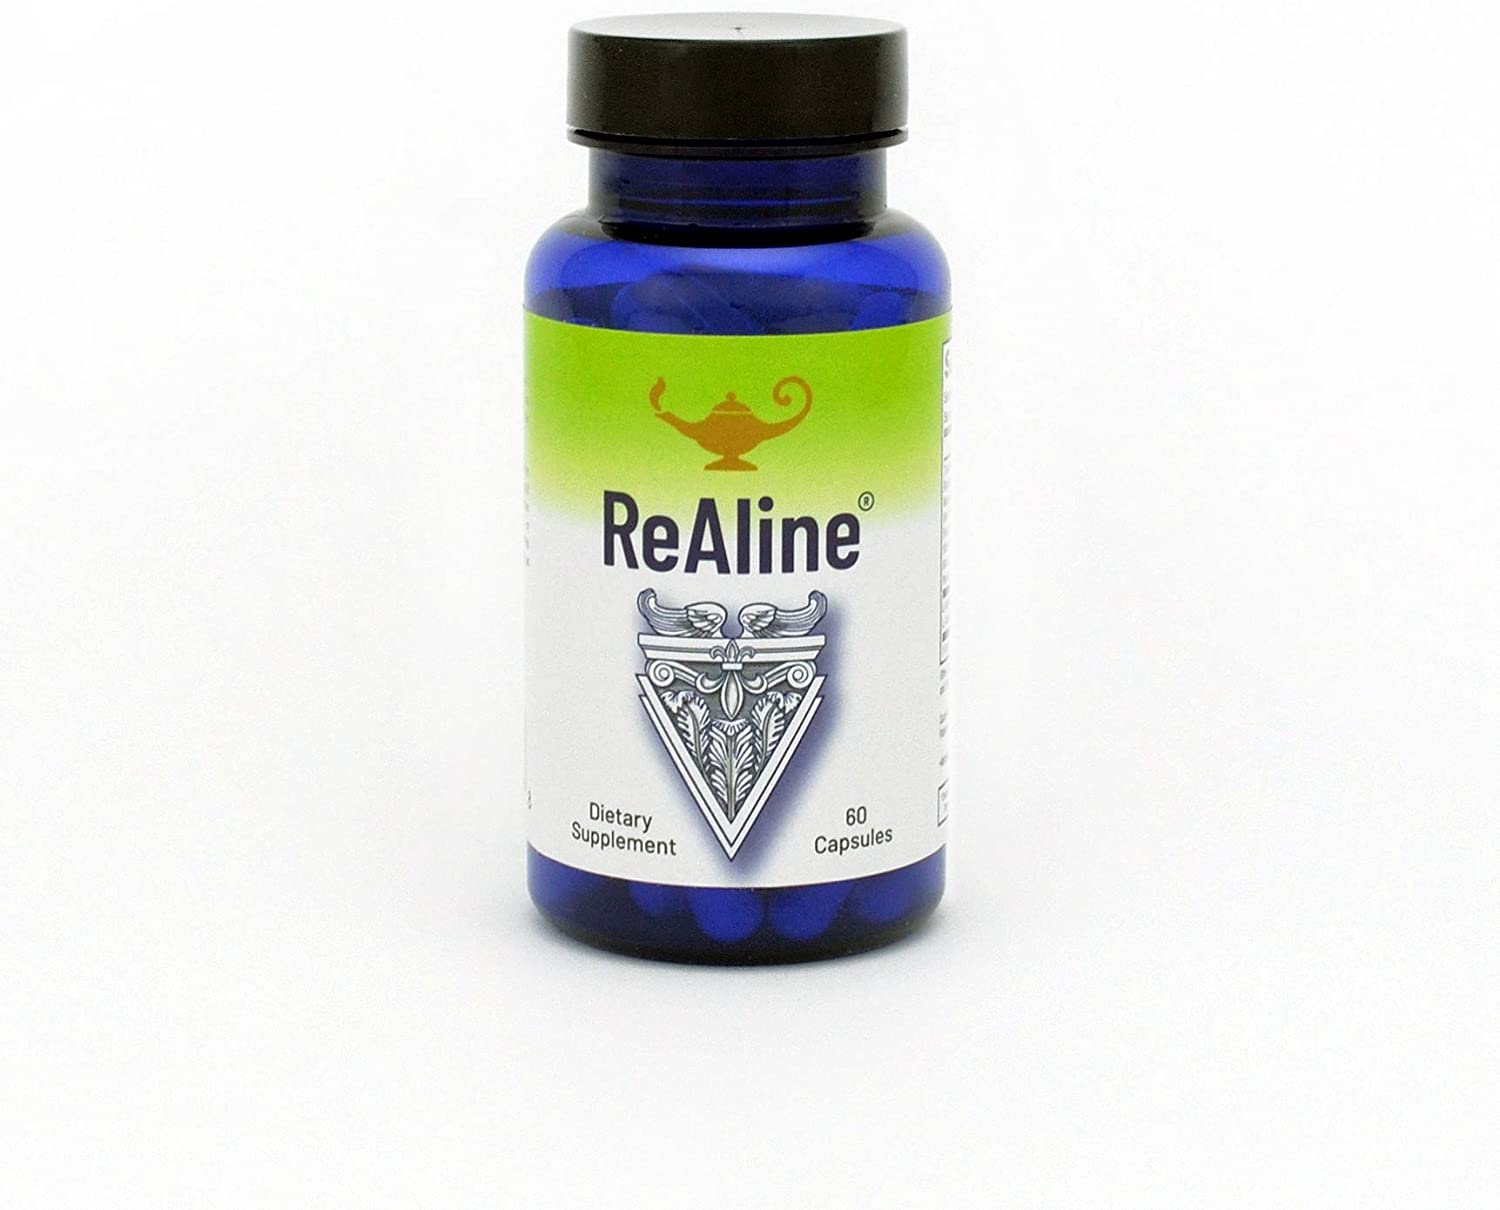 ReAline Capsules – Taurine Compound Formulated by Dr. Carolyn Dean. from RnA ReSet. with Methionine and Methylated B Vitamins